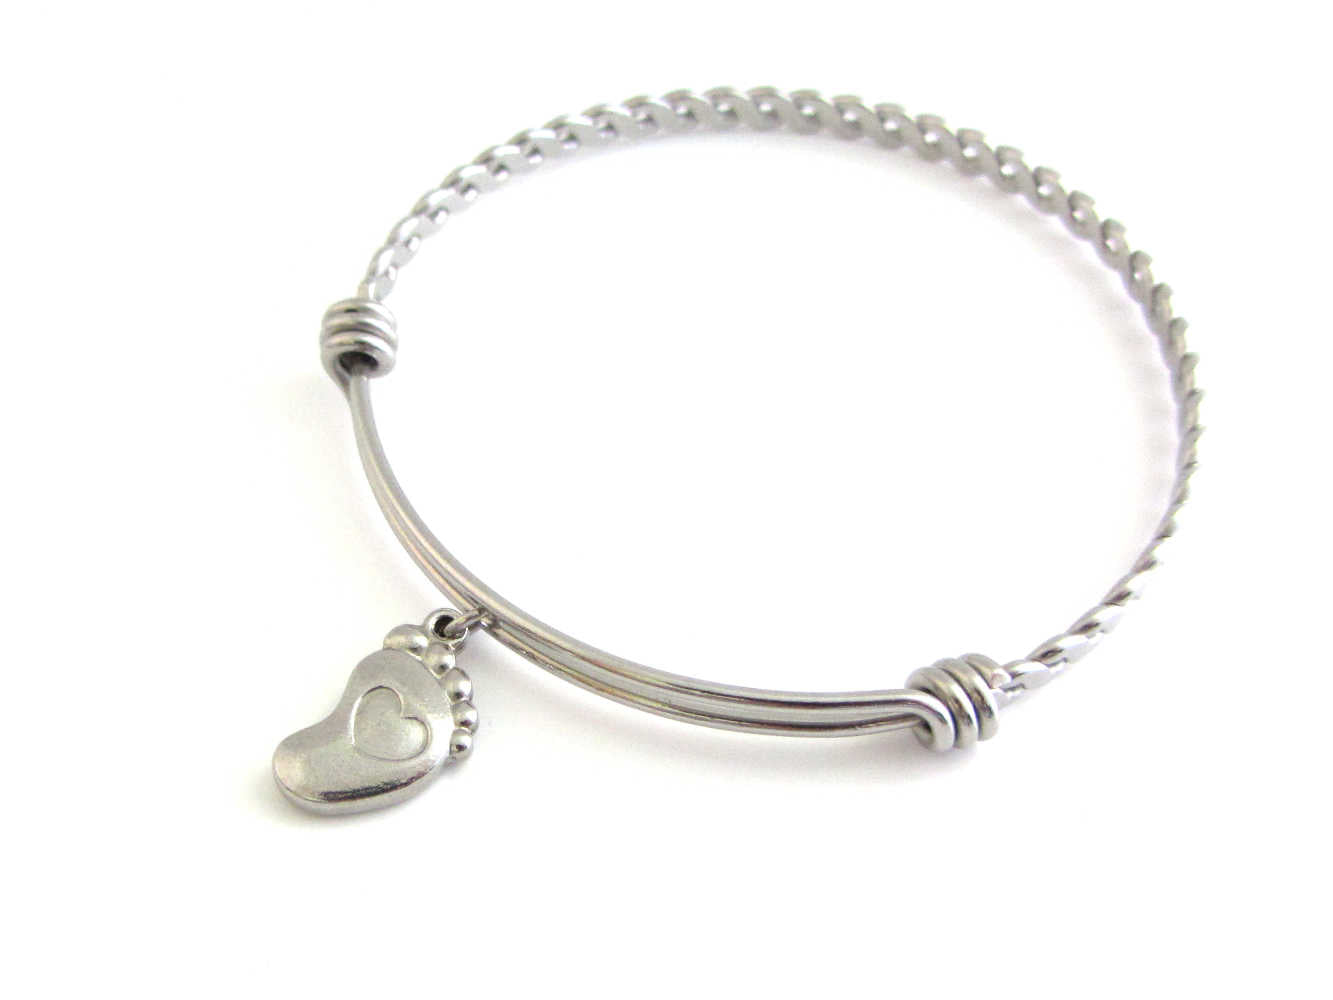 stainless steel single foot charm with indented heart on a bangle with braided twist pattern